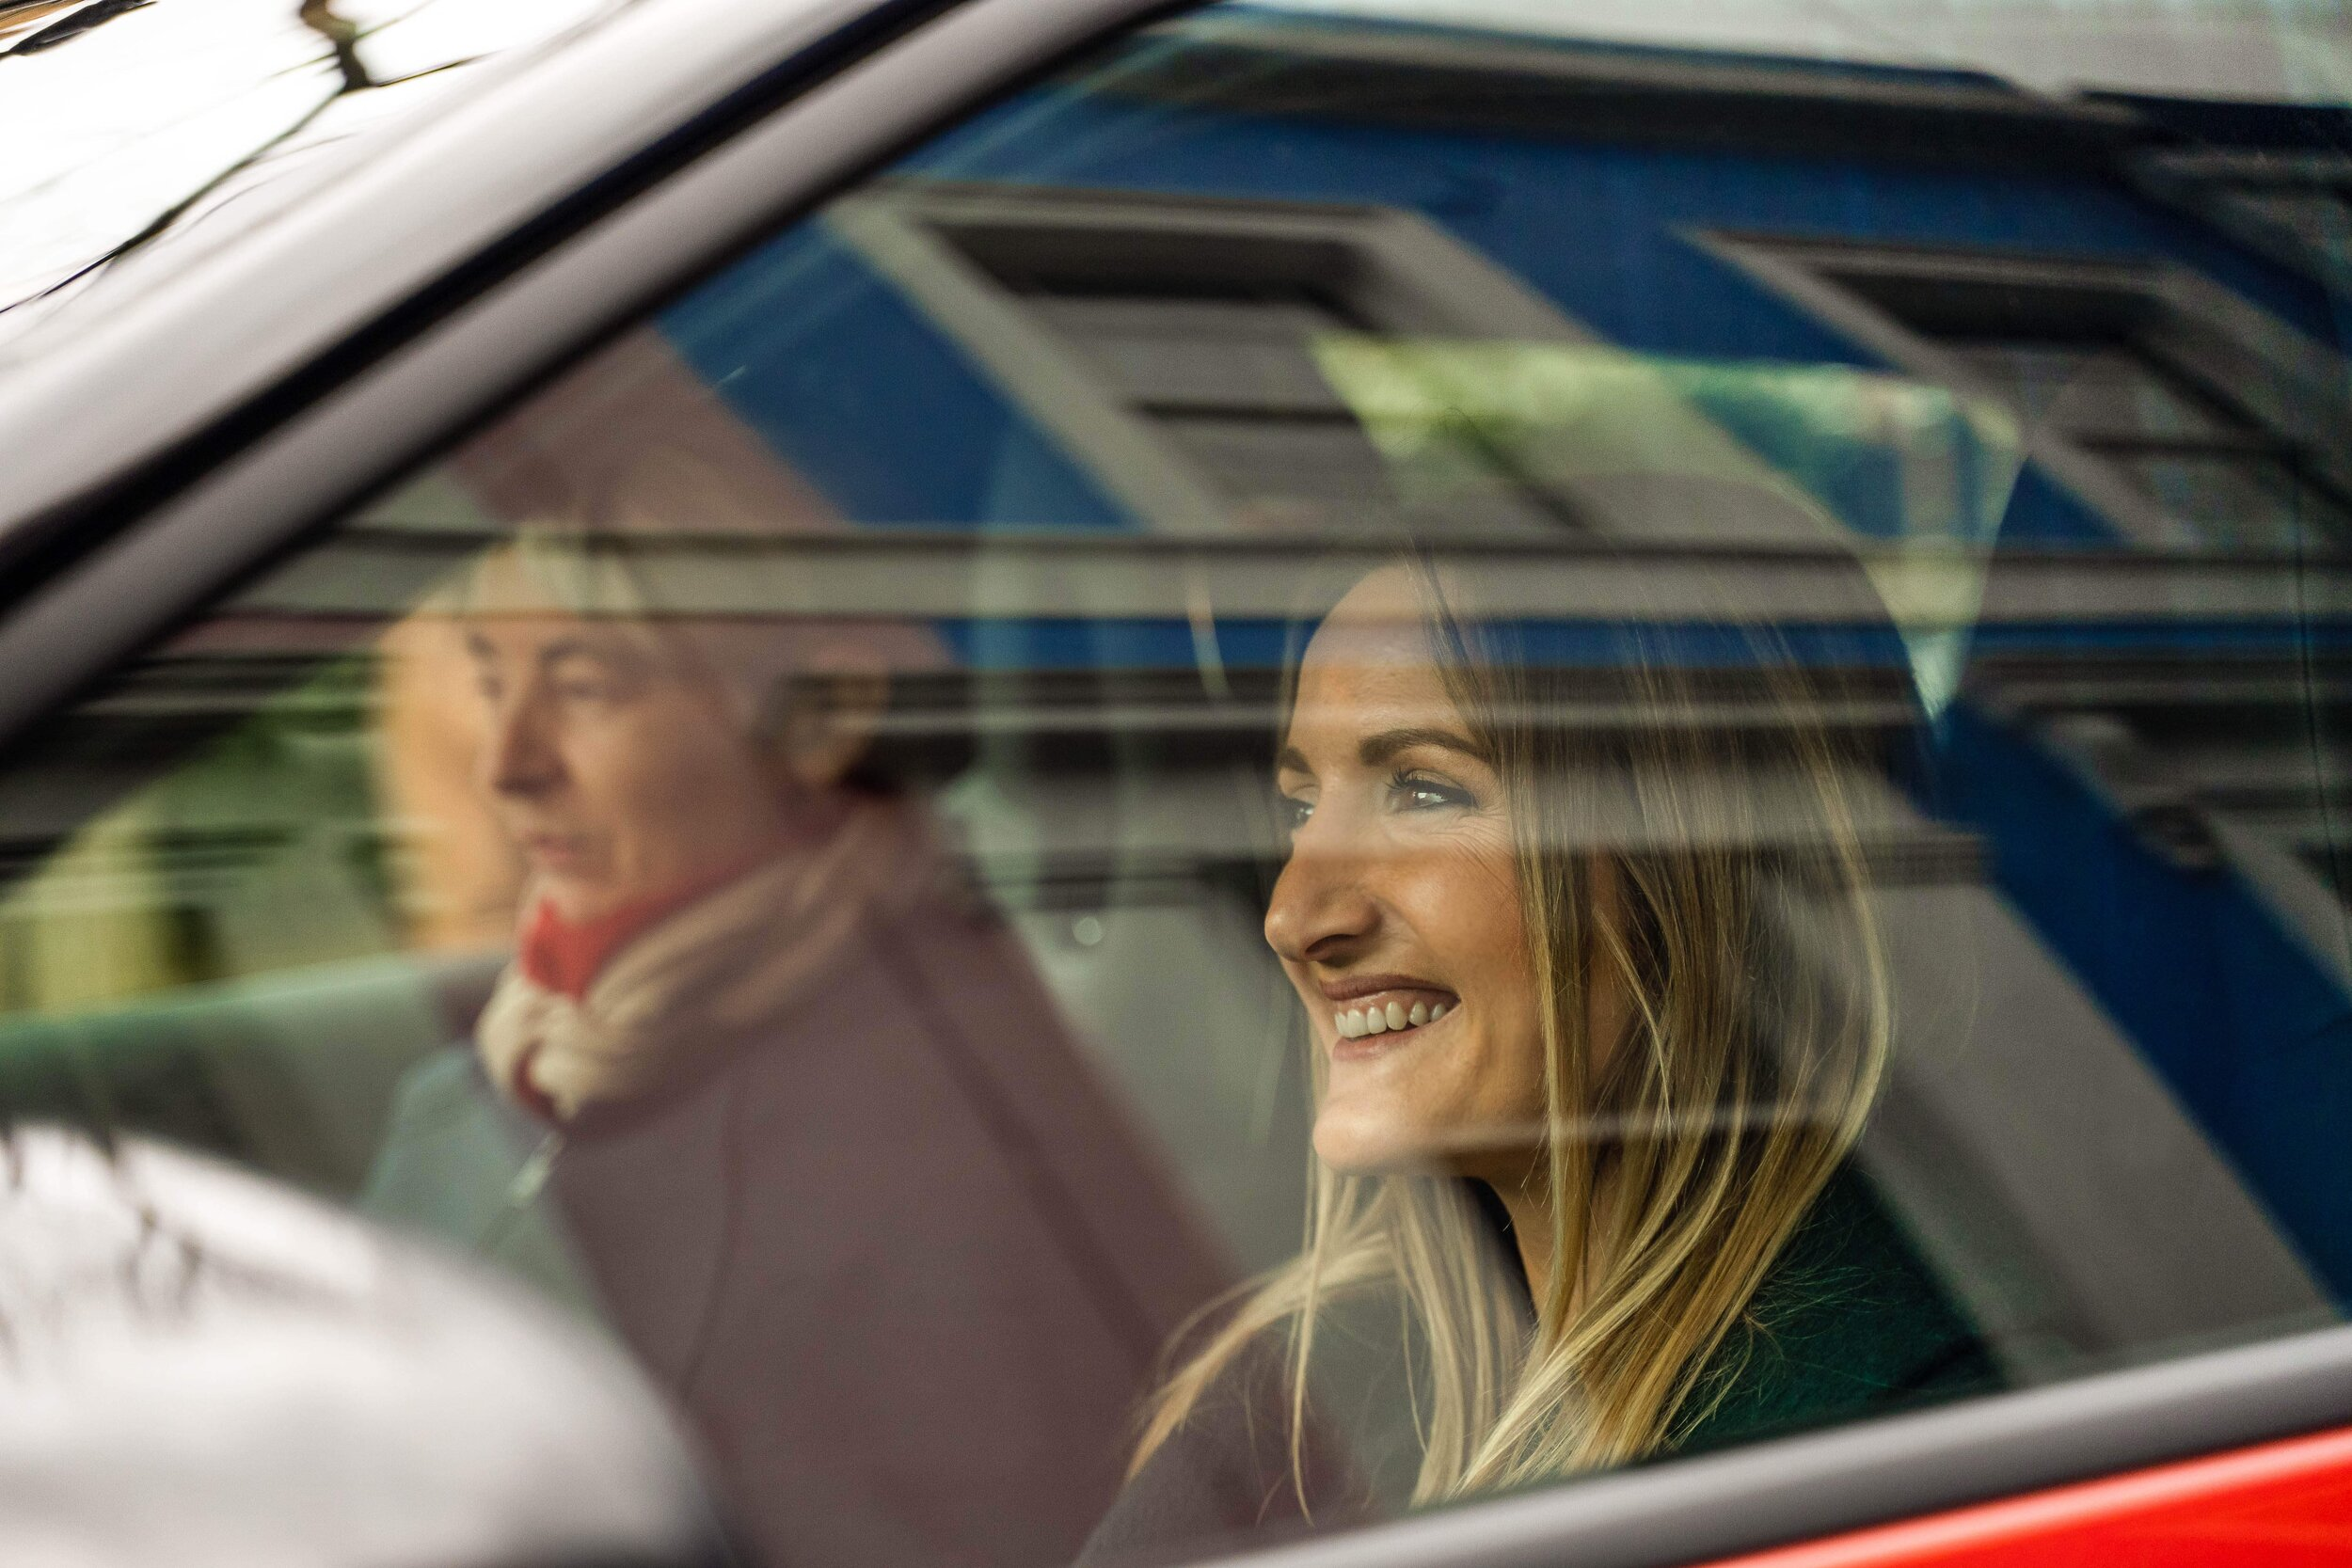 Ellectric Lesley Busby And Carine Giachetti Two Leading Women In Automotive Design